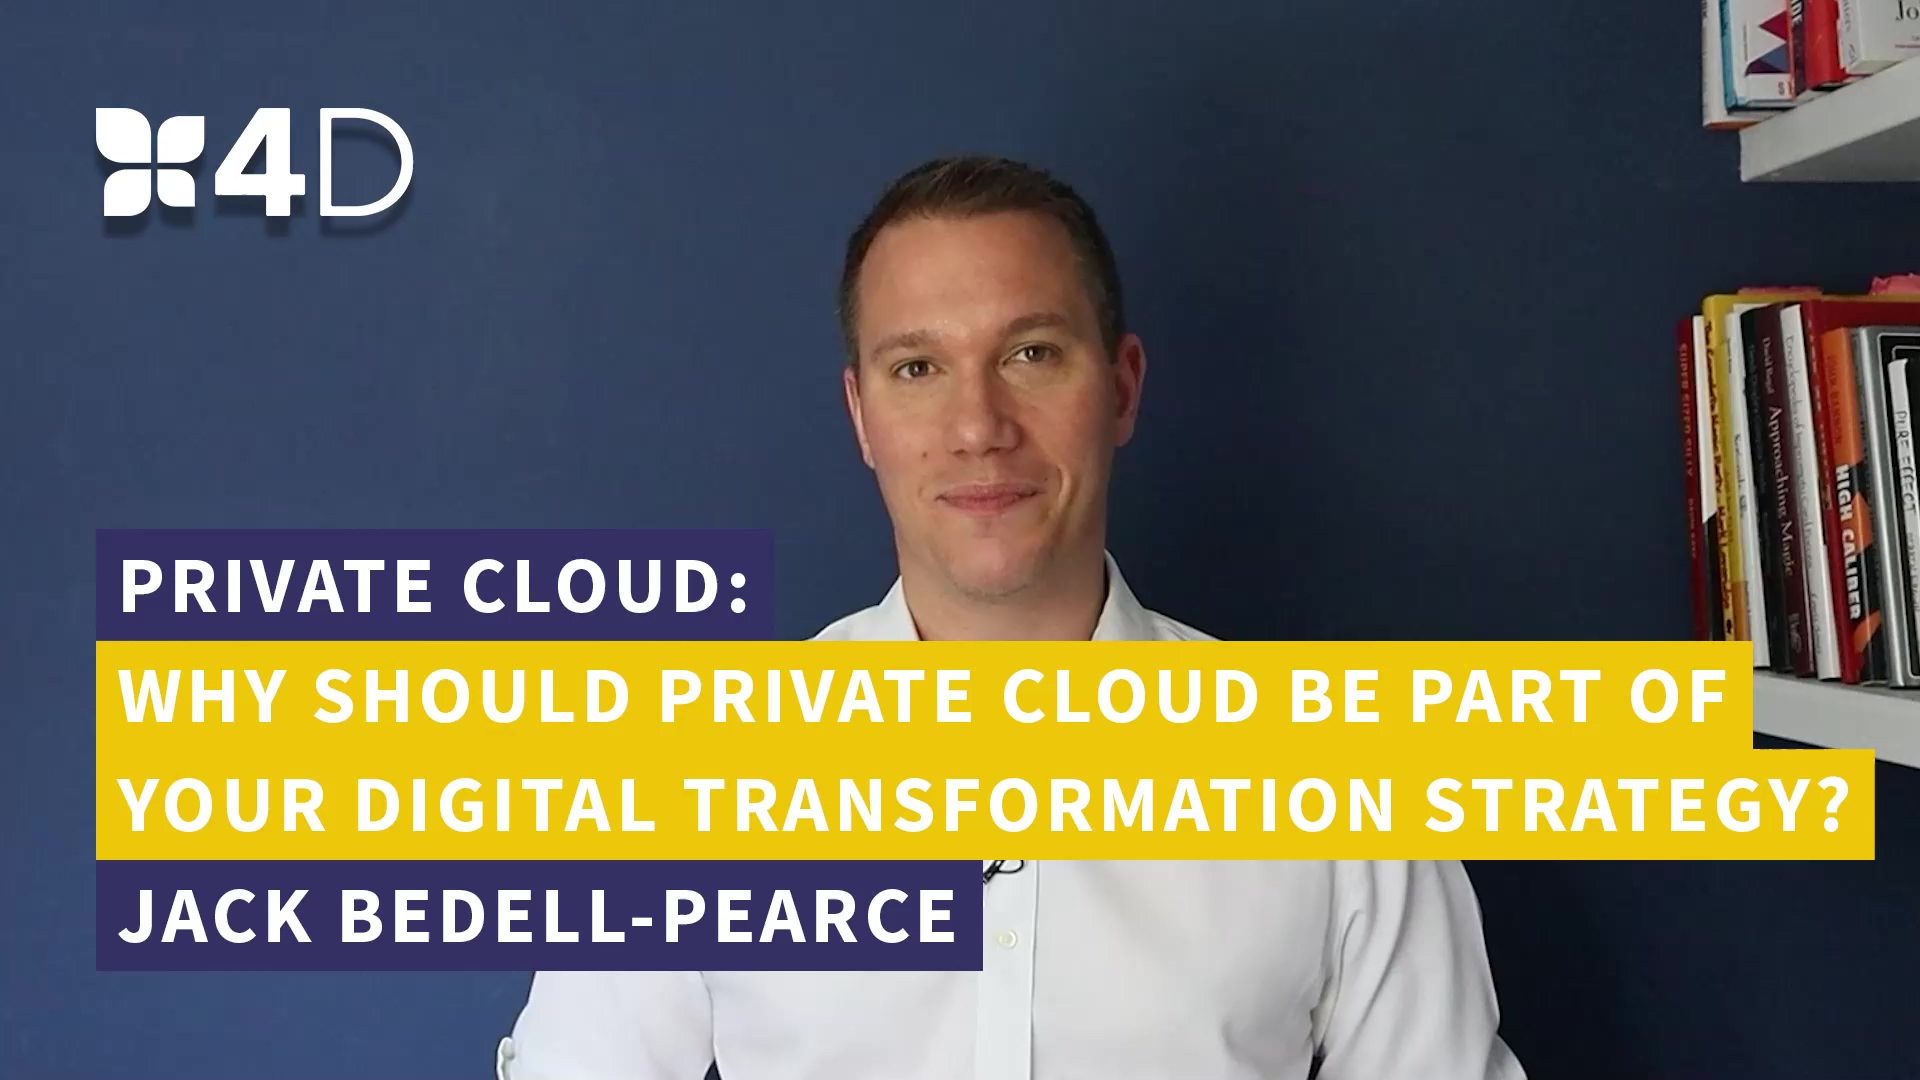 4D - Why Private Cloud Should be Part of your Digital Transformation